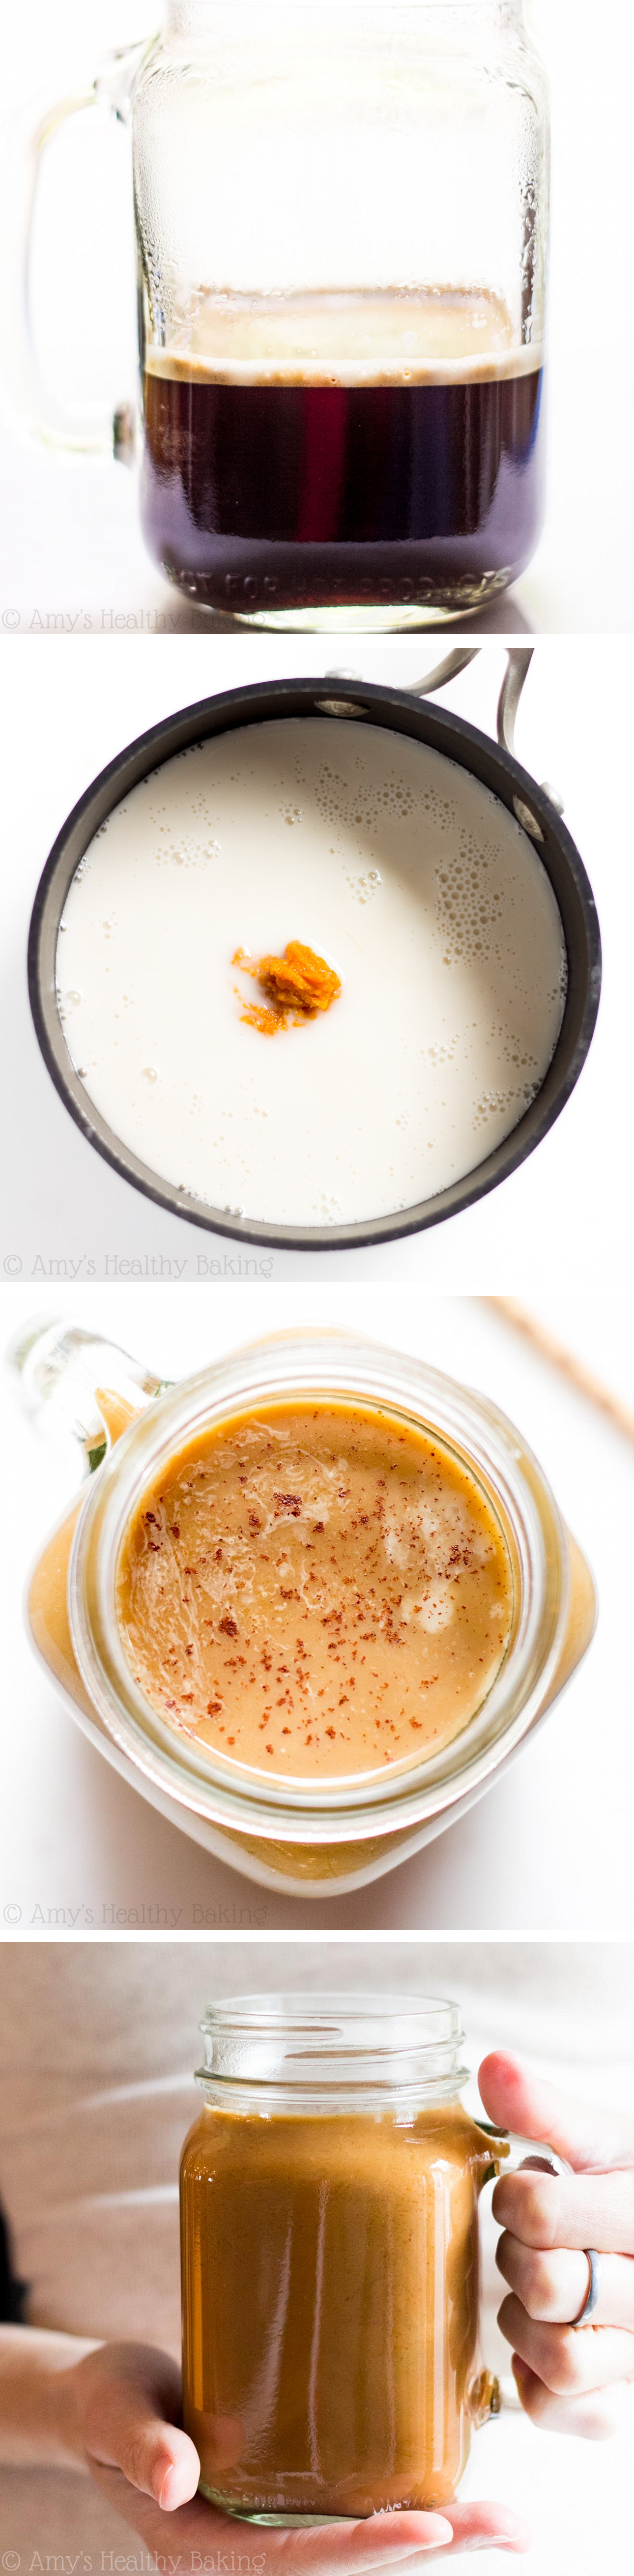 Clean-Eating Pumpkin Spice Latte -- a skinny copycat that tastes even better than the original! Make your own for a fraction of the cost! It has NO refined or artificial ingredients & nearly 9g of protein!